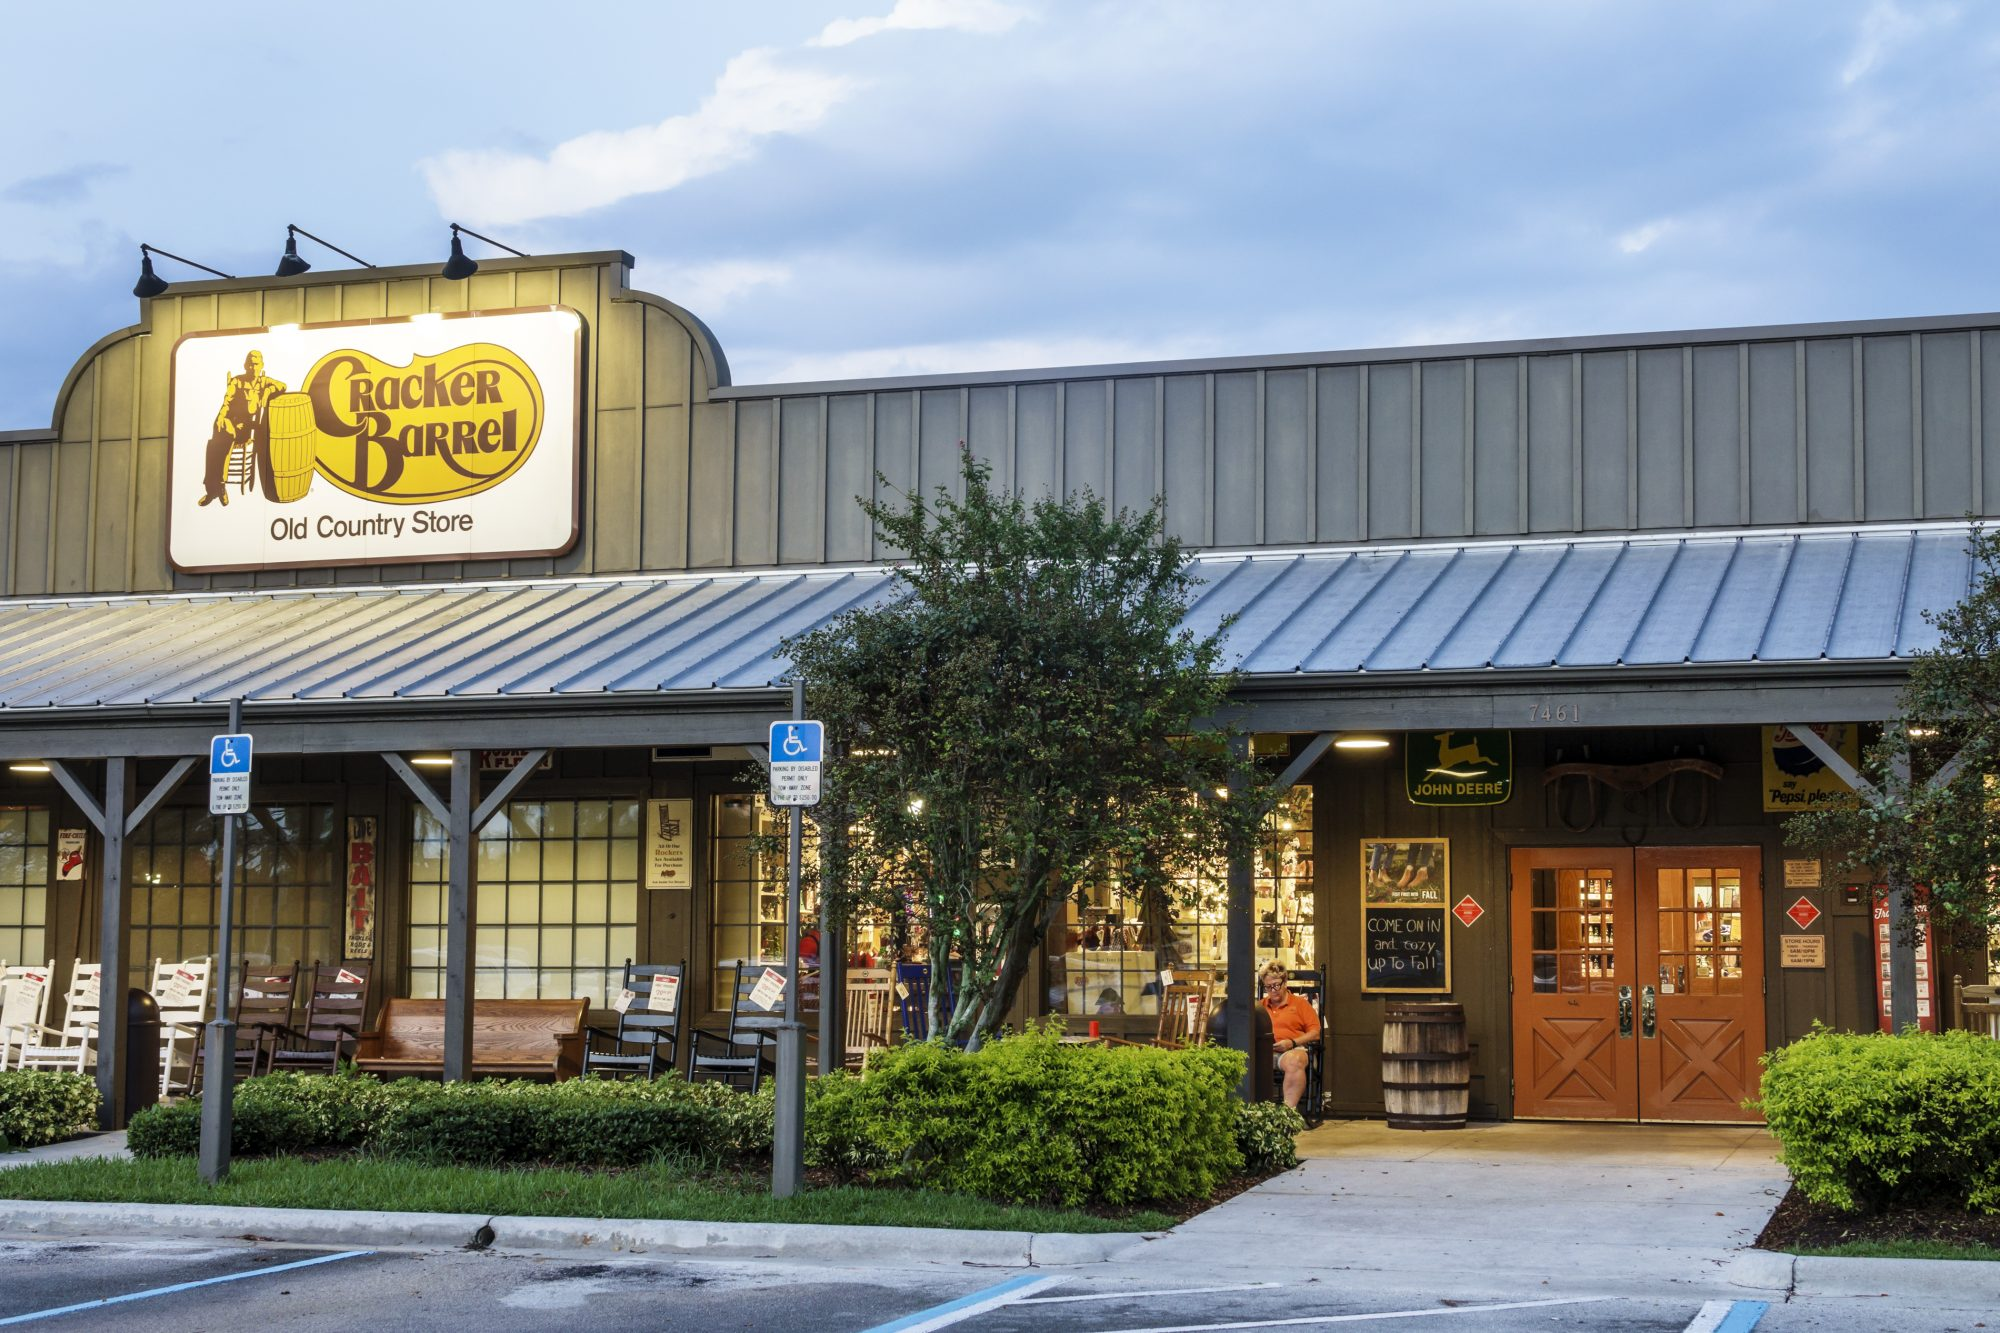 Georgia Cracker Barrel Waitress Surprised with a $1,200 Tip